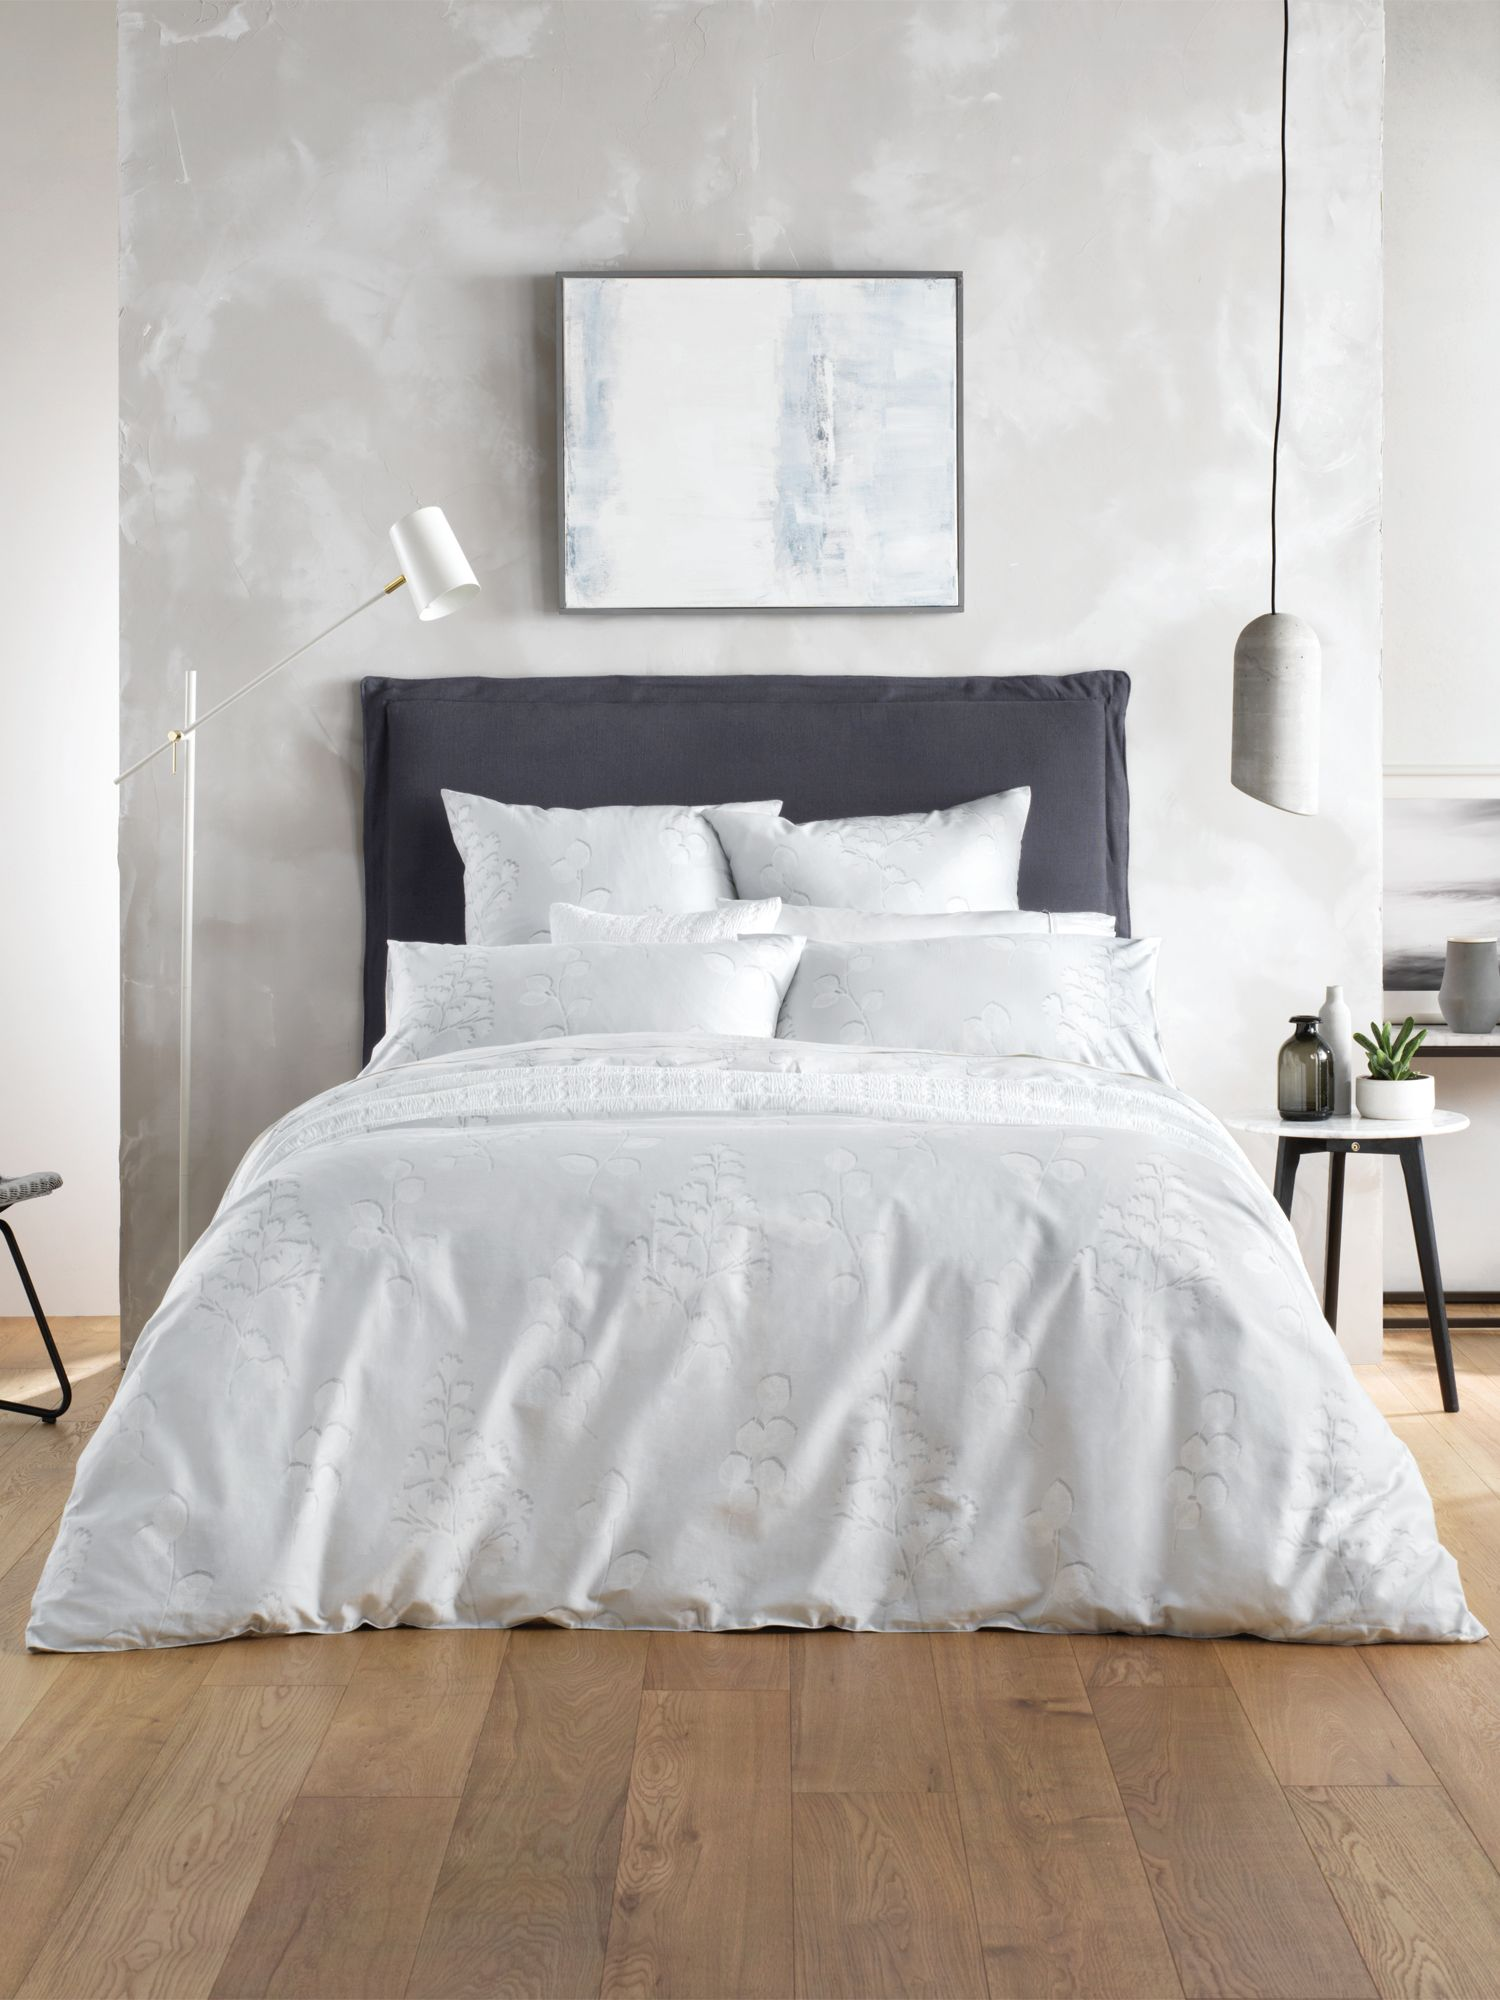 Sheridan Duvet Cover Shop For Cheap Home Textiles And